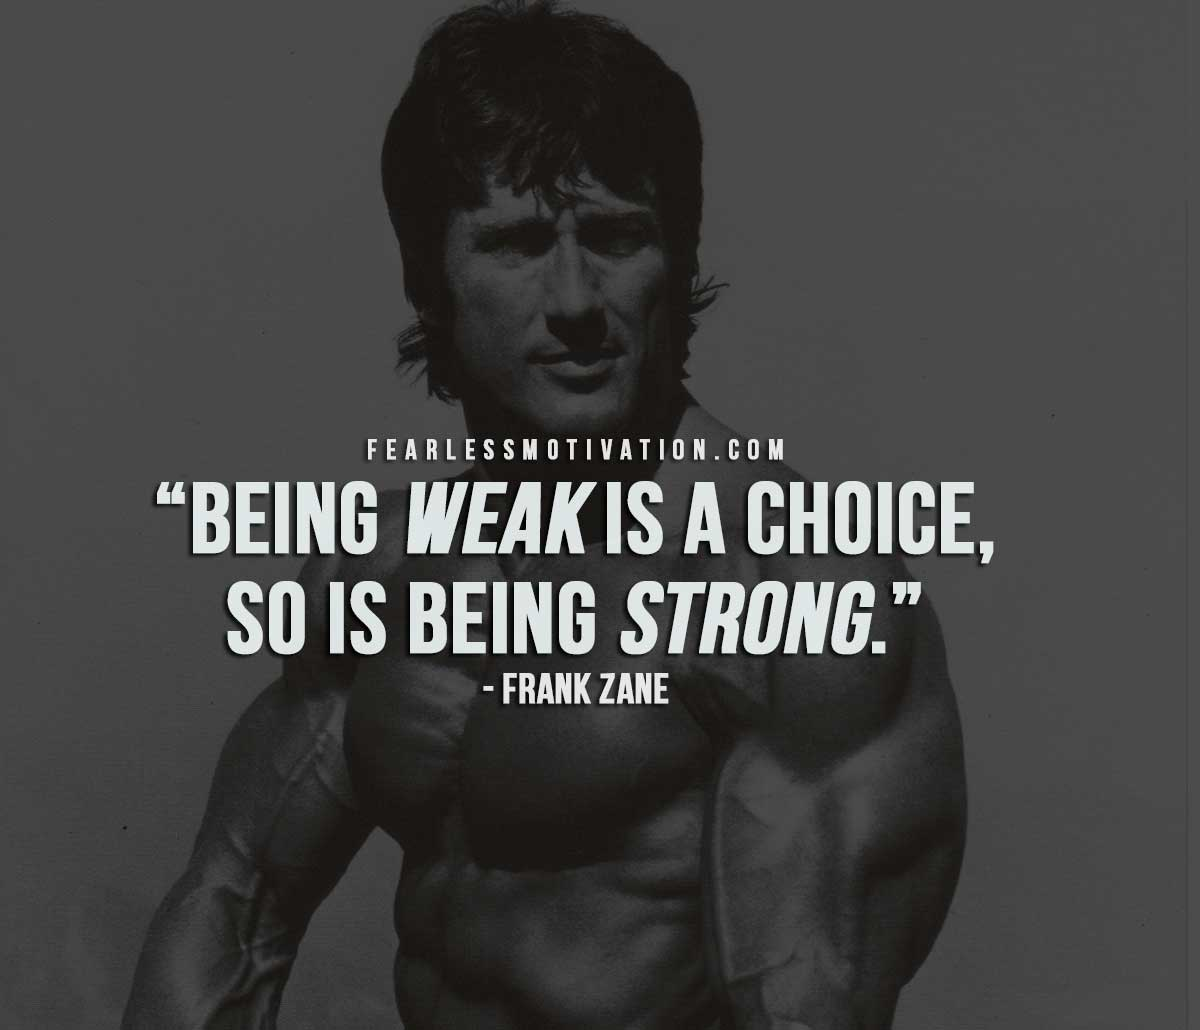 Motivational Quotes For Sports Teams: 10 Inspirational Frank Zane Quotes